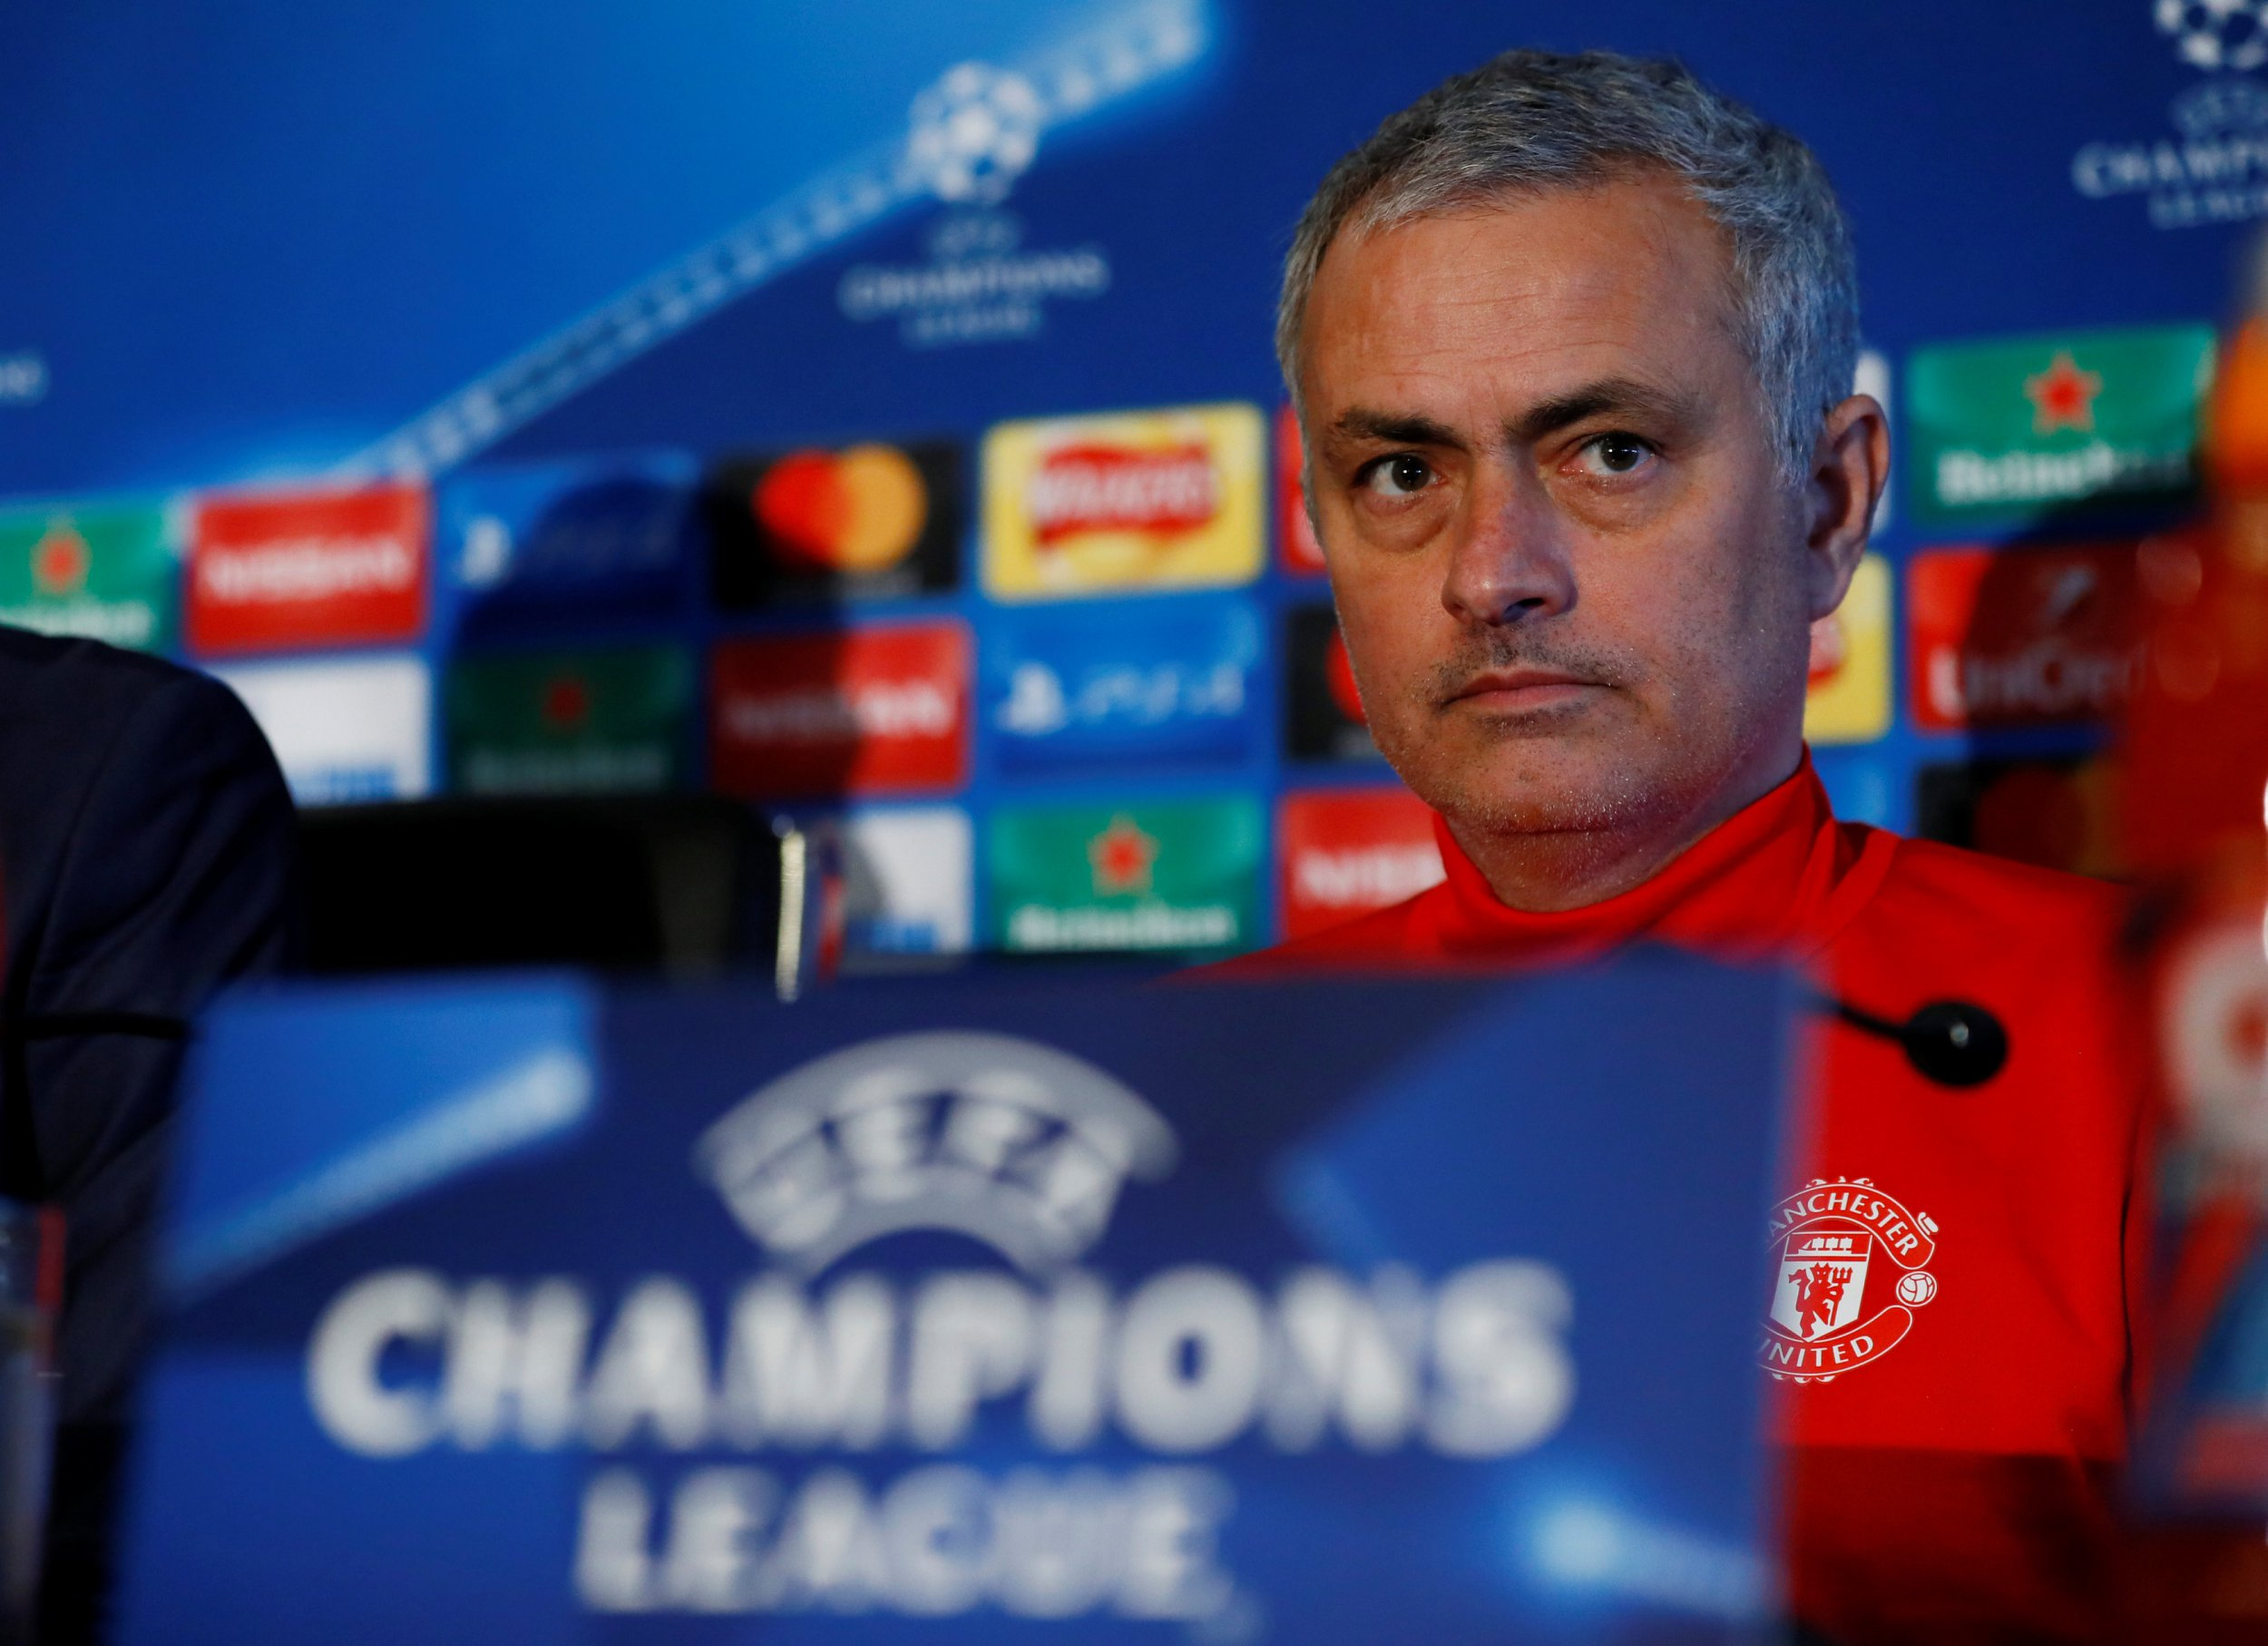 Jose Mourinho looks sullen listening to a question